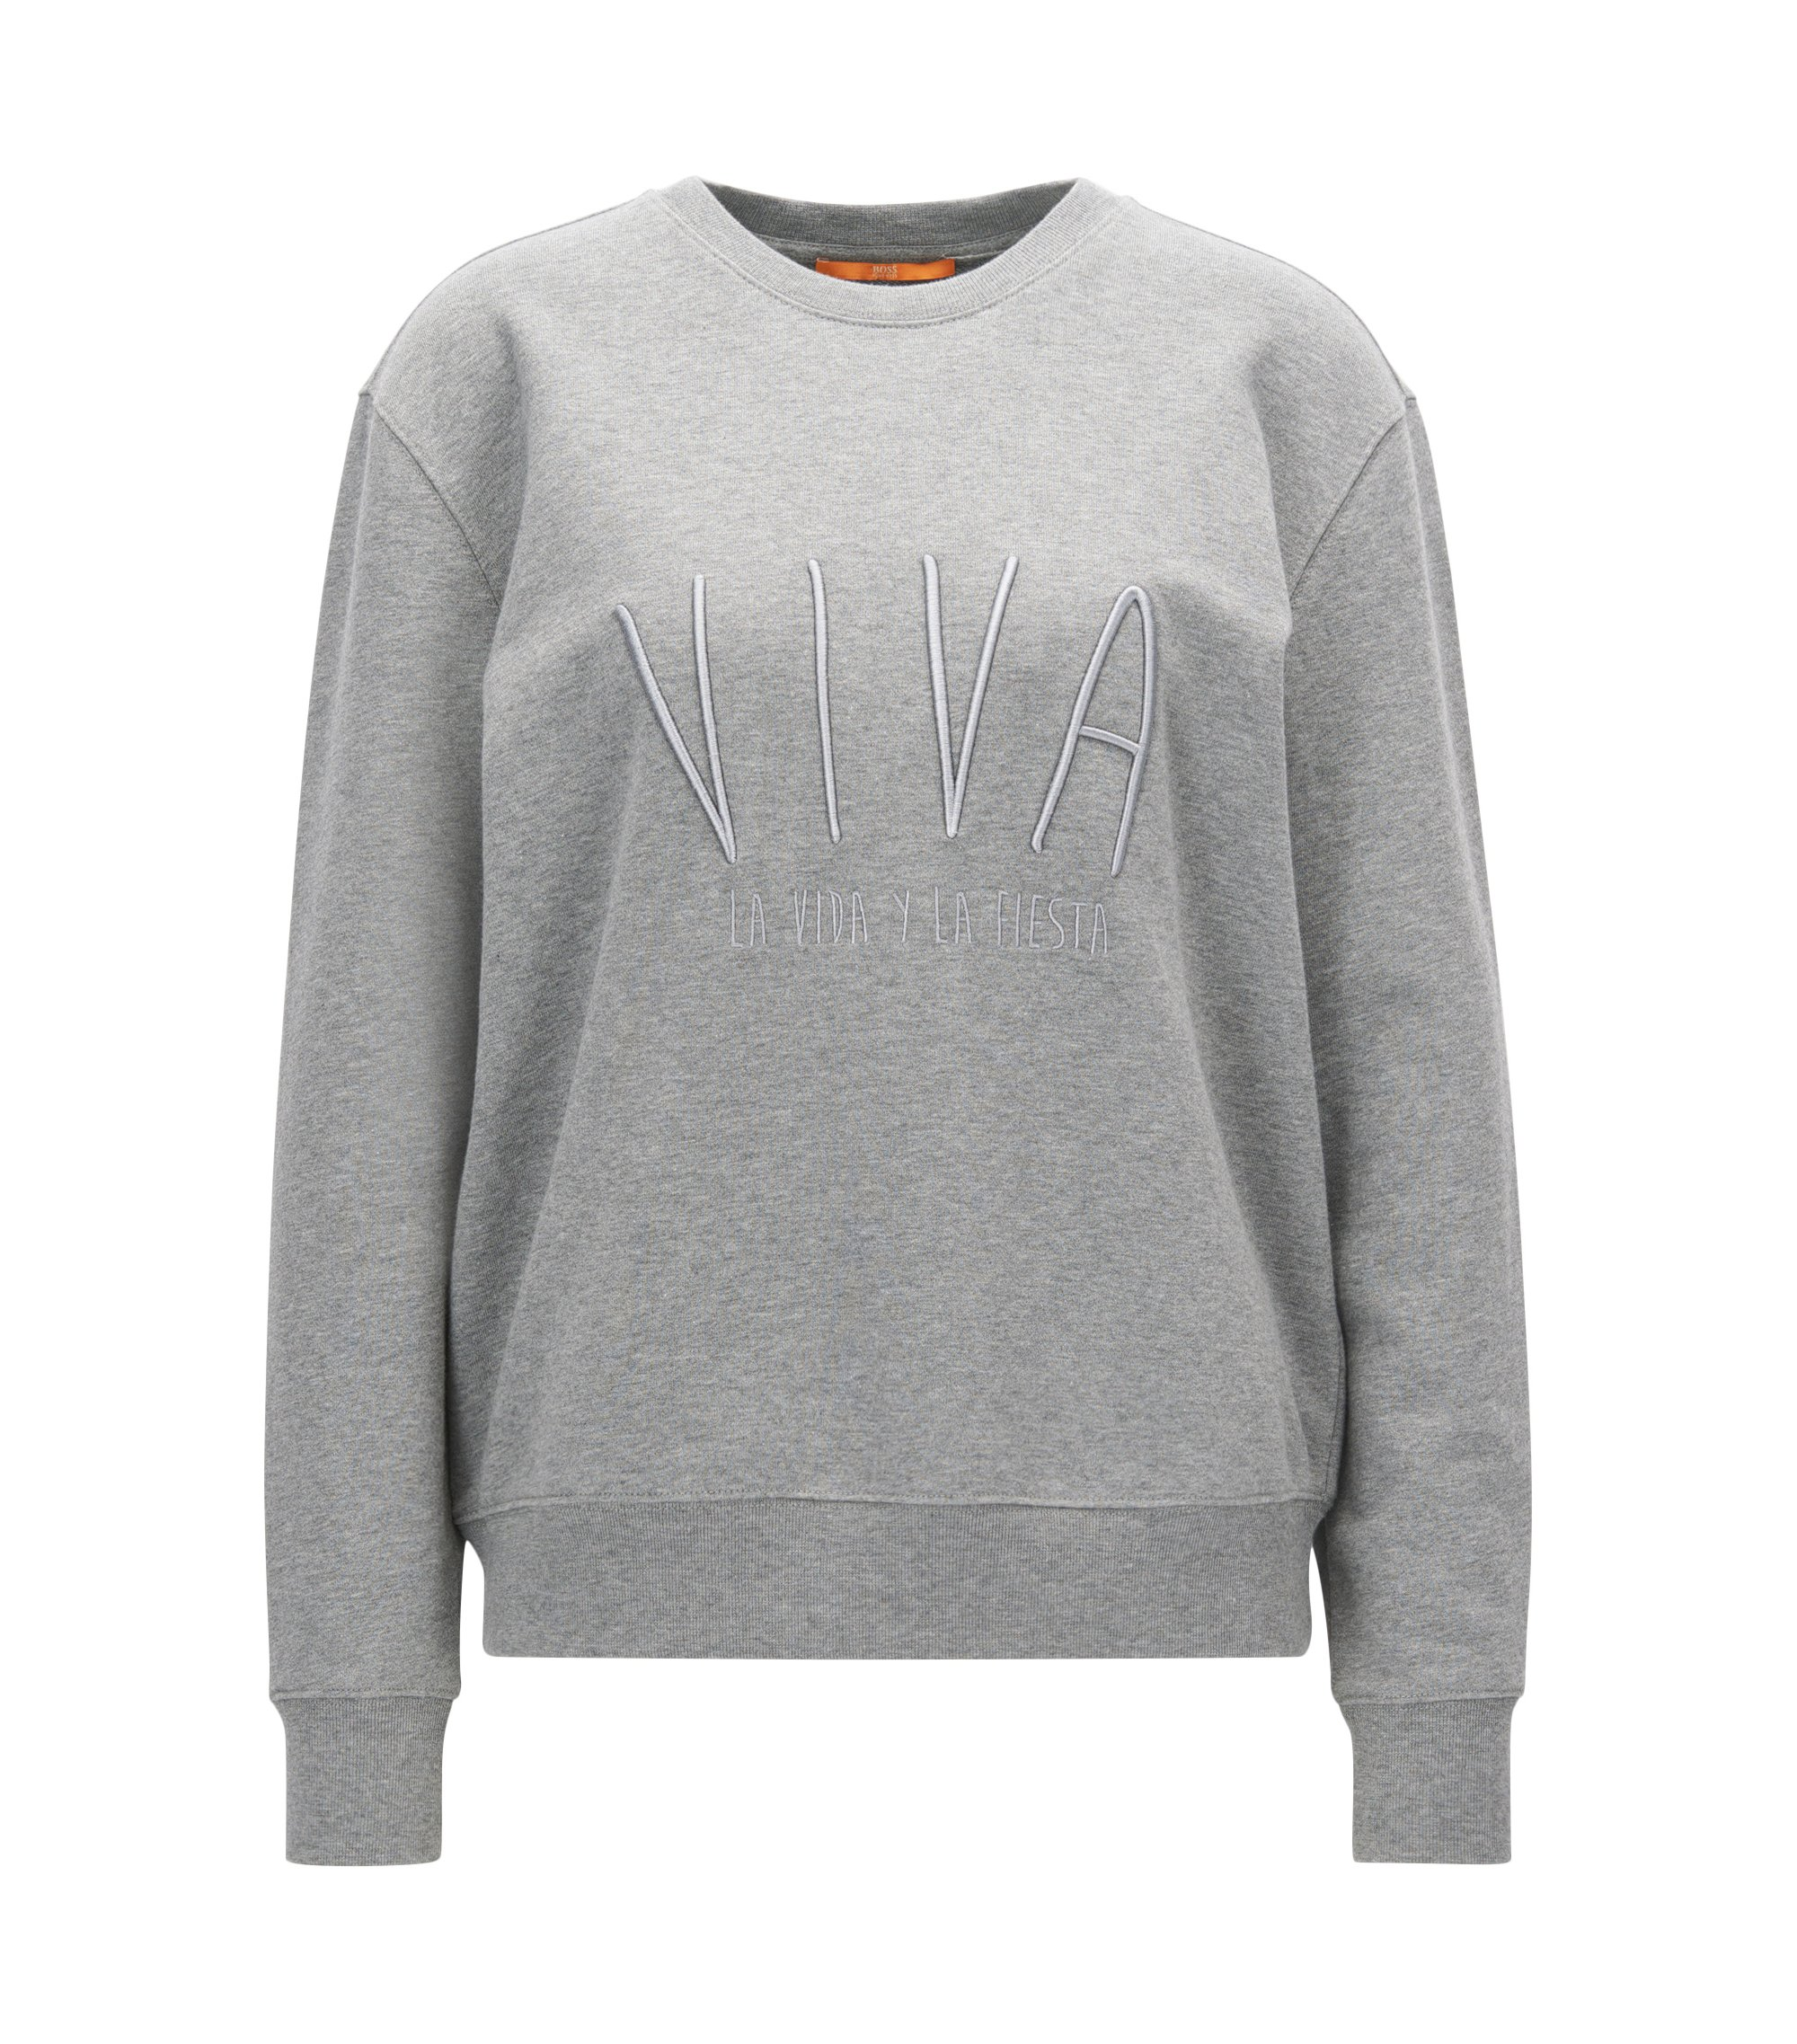 Sweatshirt aus French Terry mit gesticktem Slogan, Grau